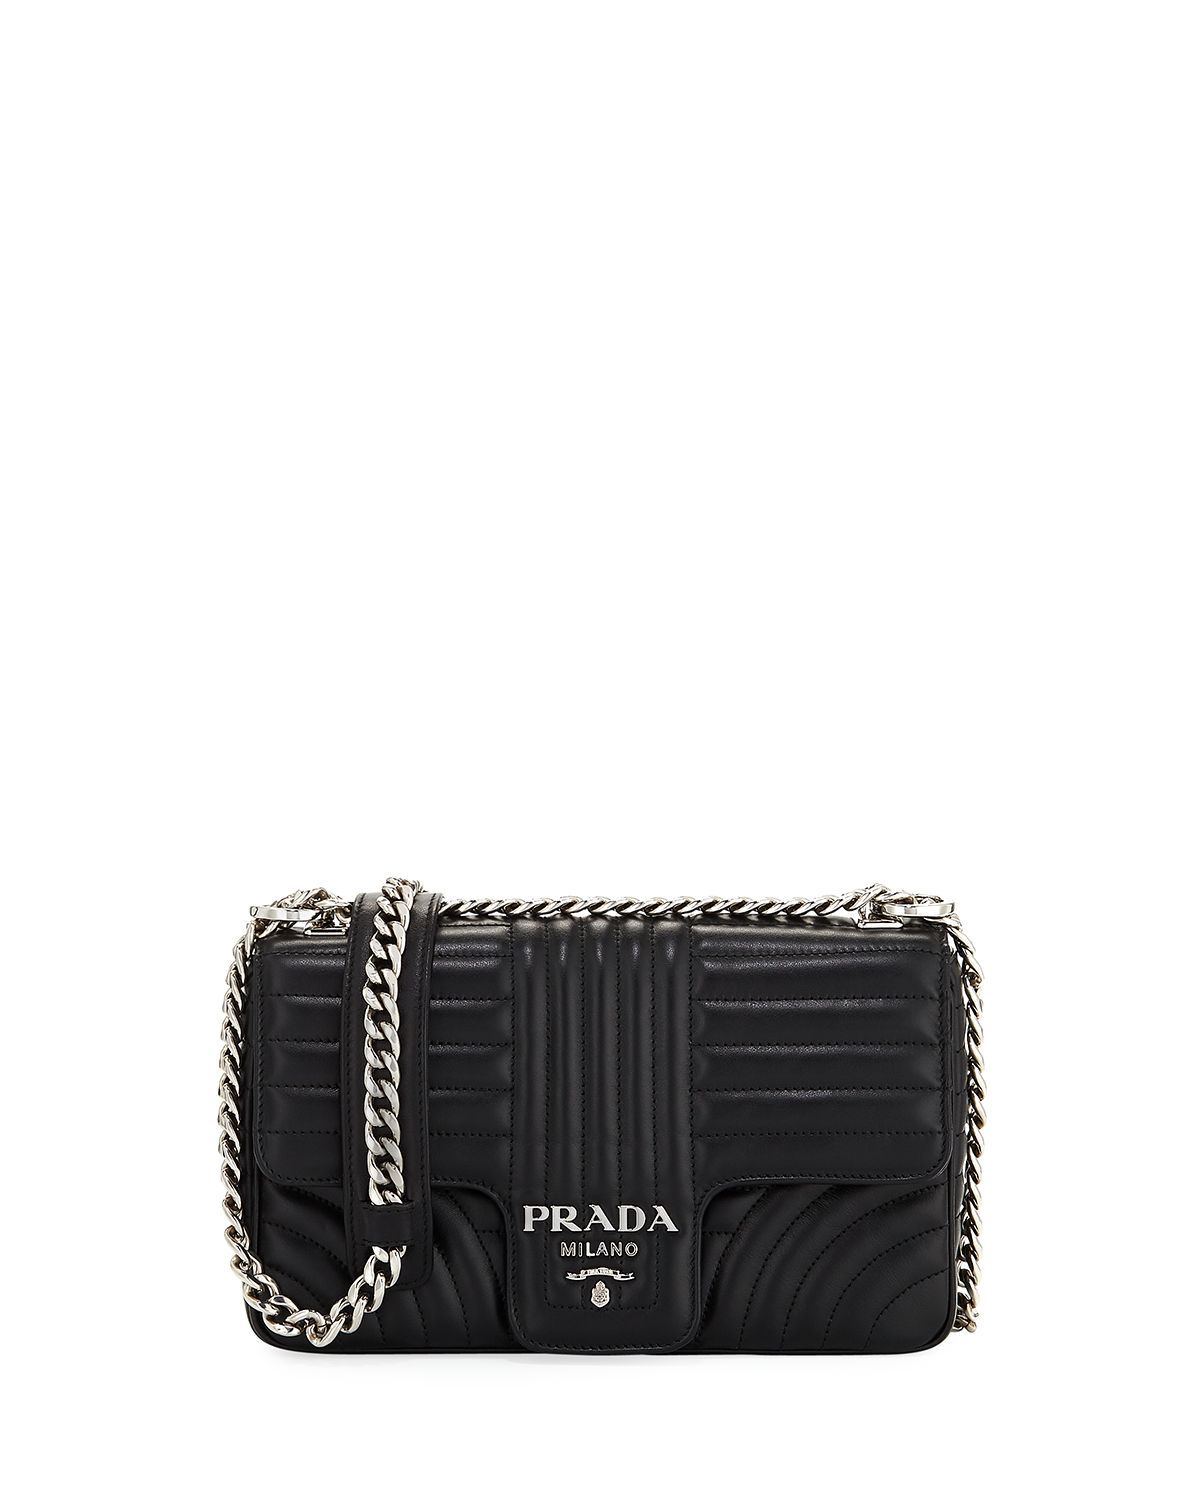 Prada Medium Diagramme Shoulder Bag  51149e8bd694c